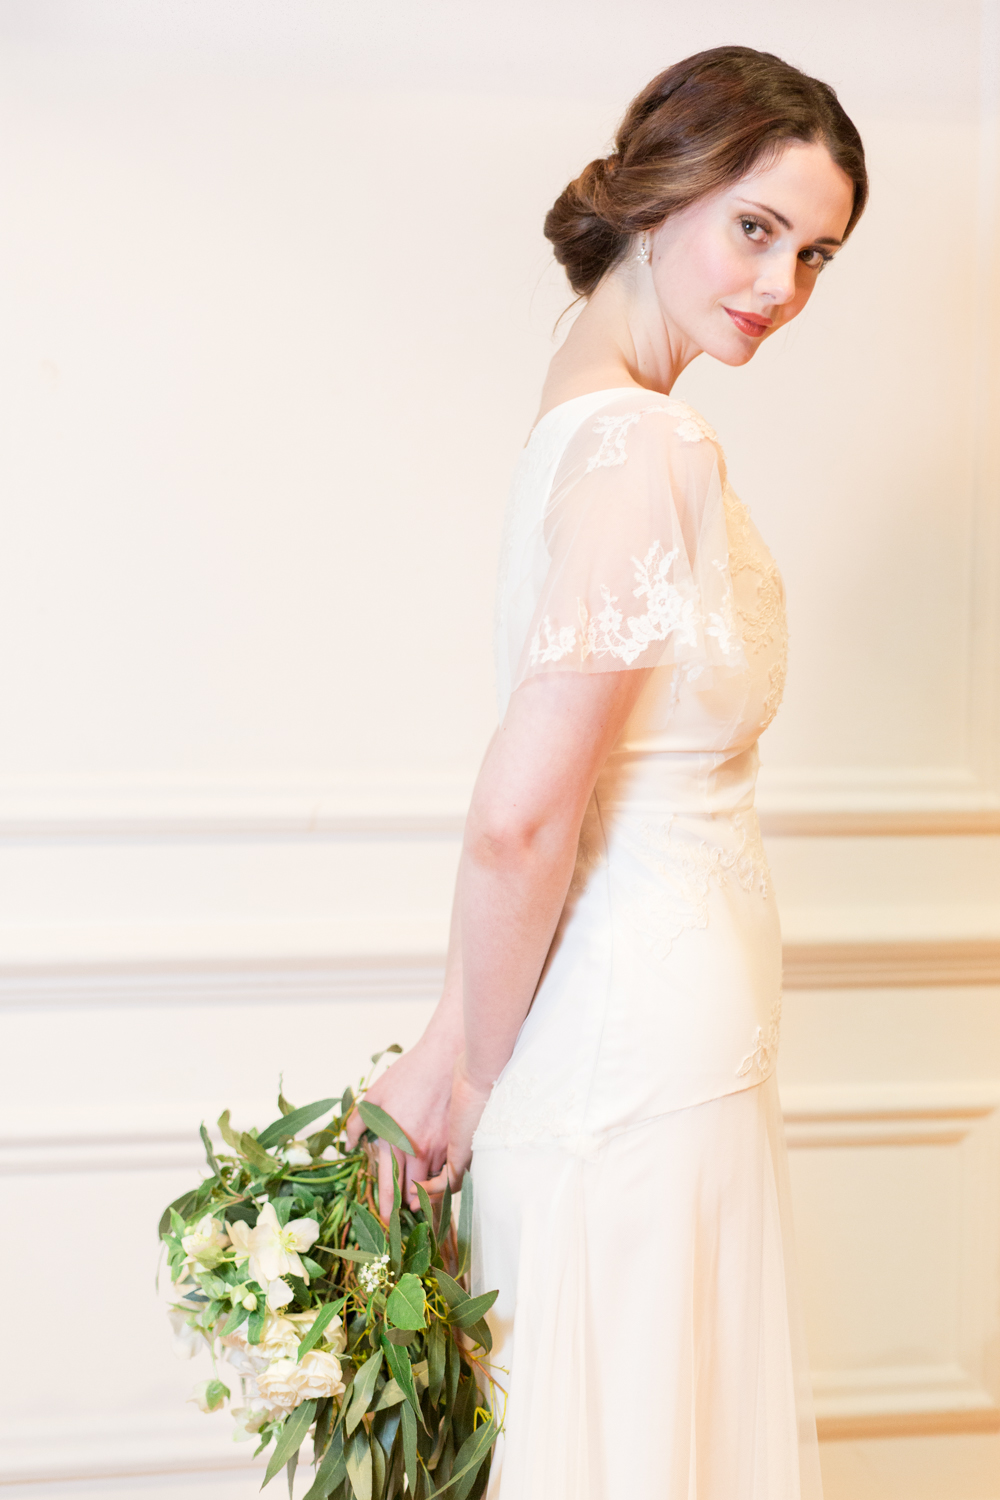 The Timeless Stylist - Timeless and Elegant Bridal Shoot